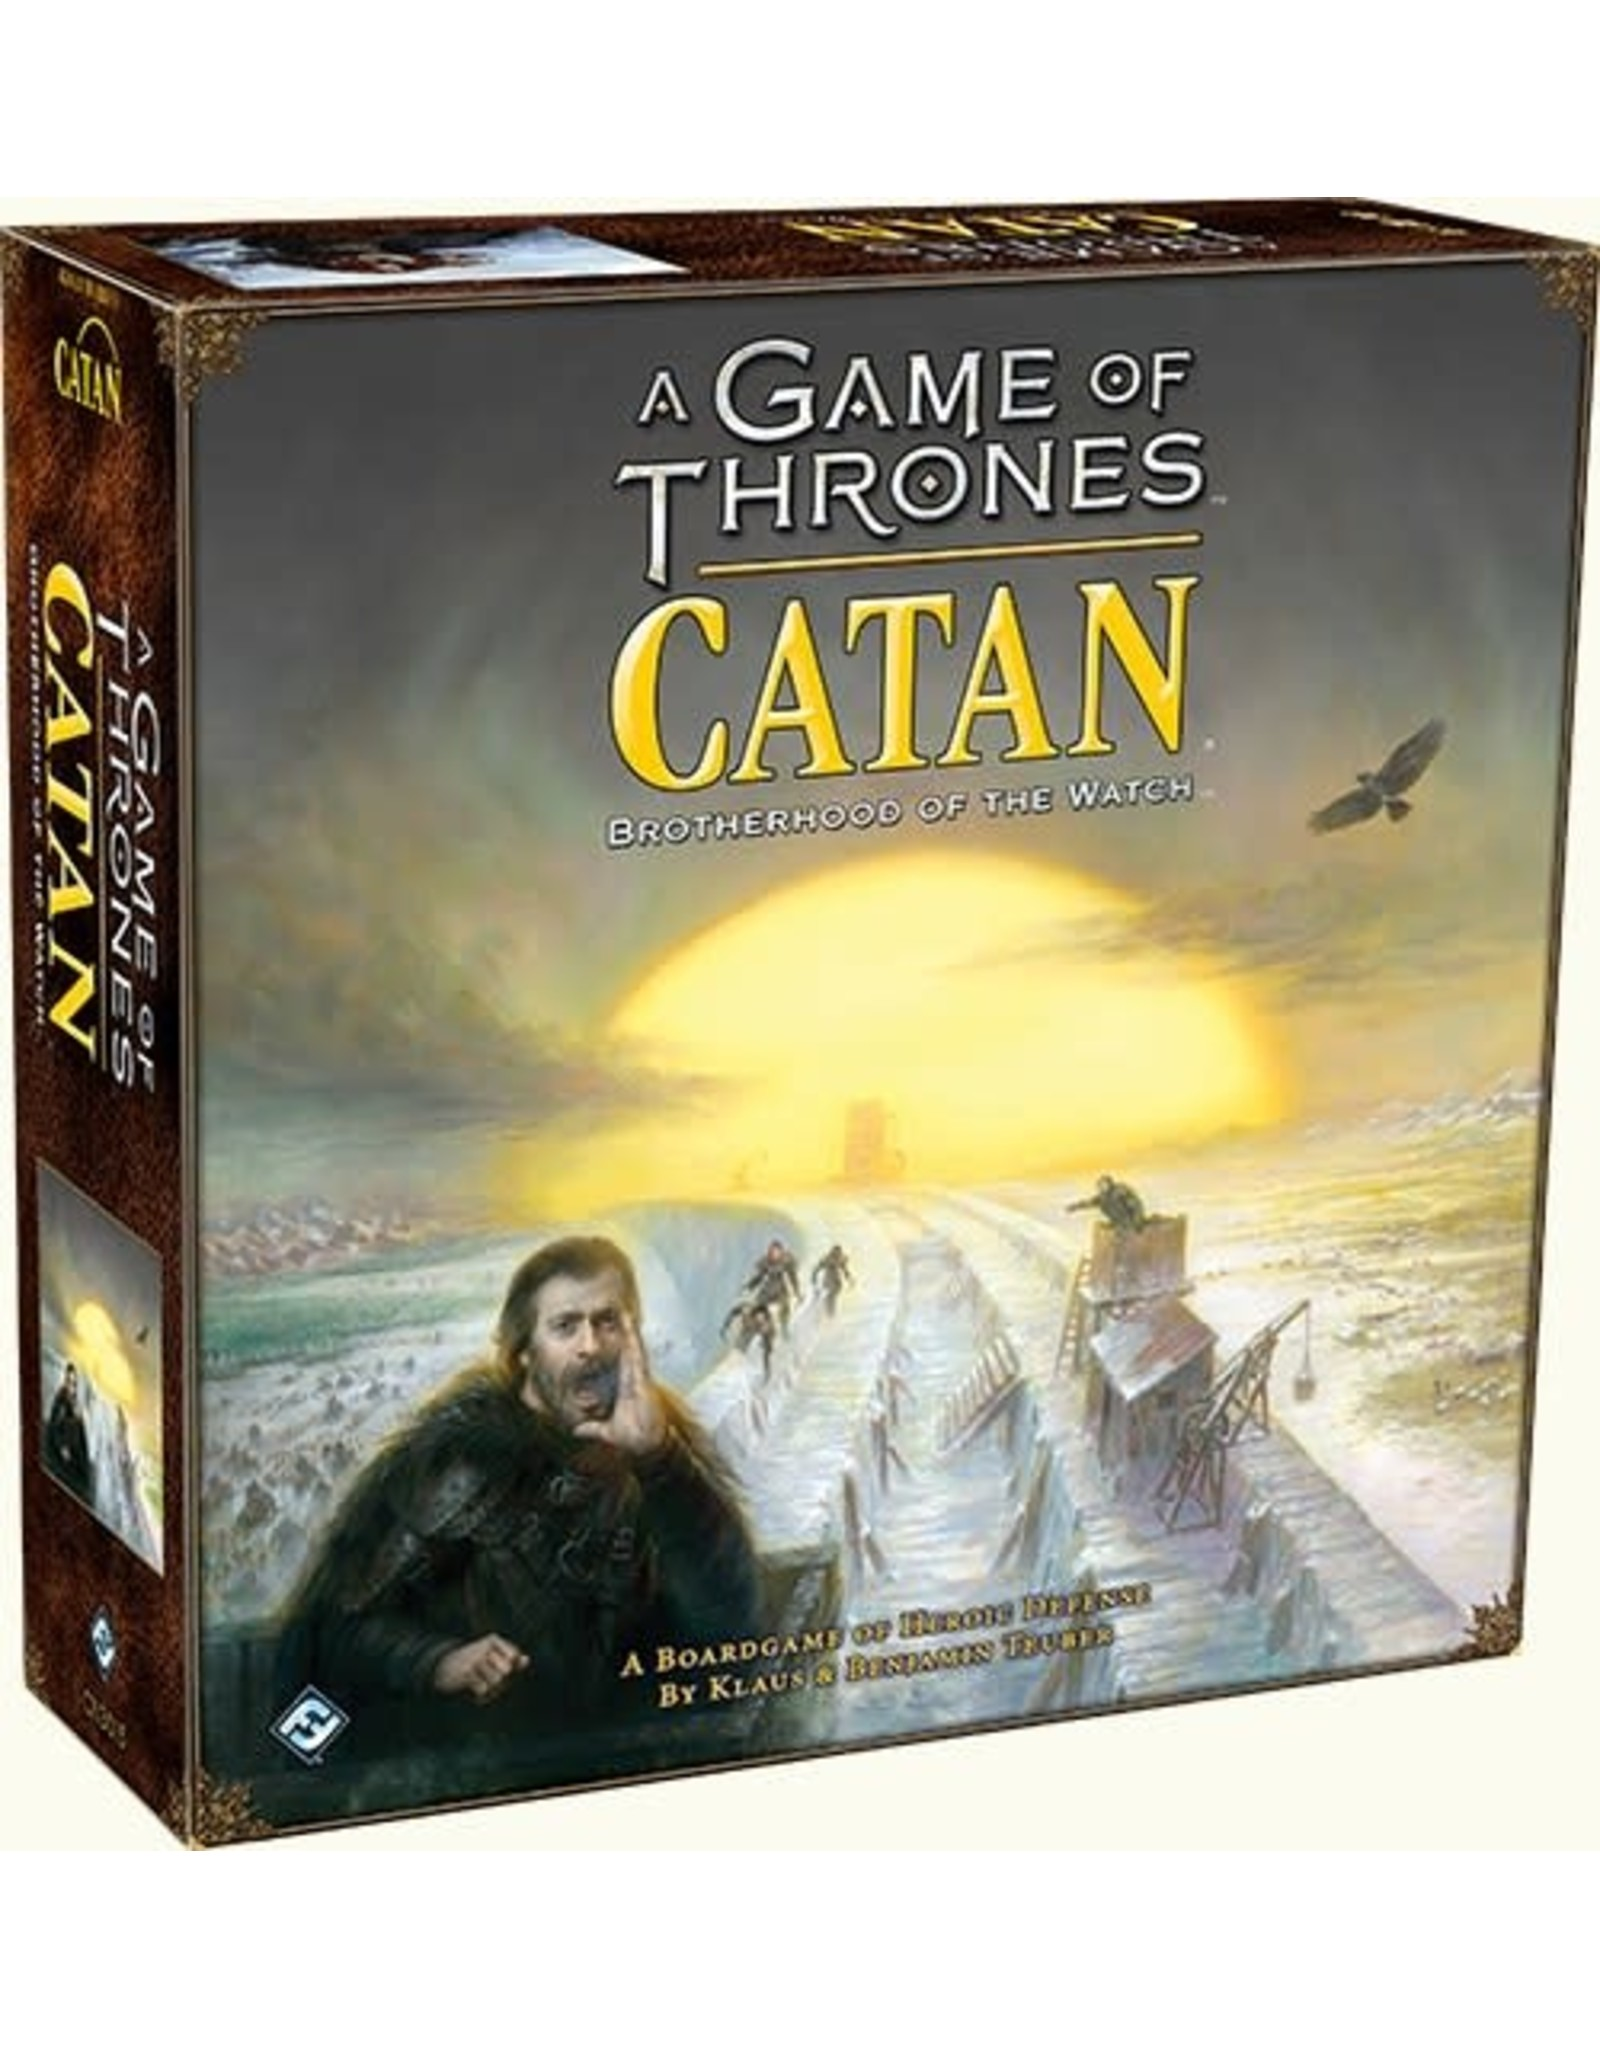 Catan A Game of Thrones Catan: Brotherhood of the Watch